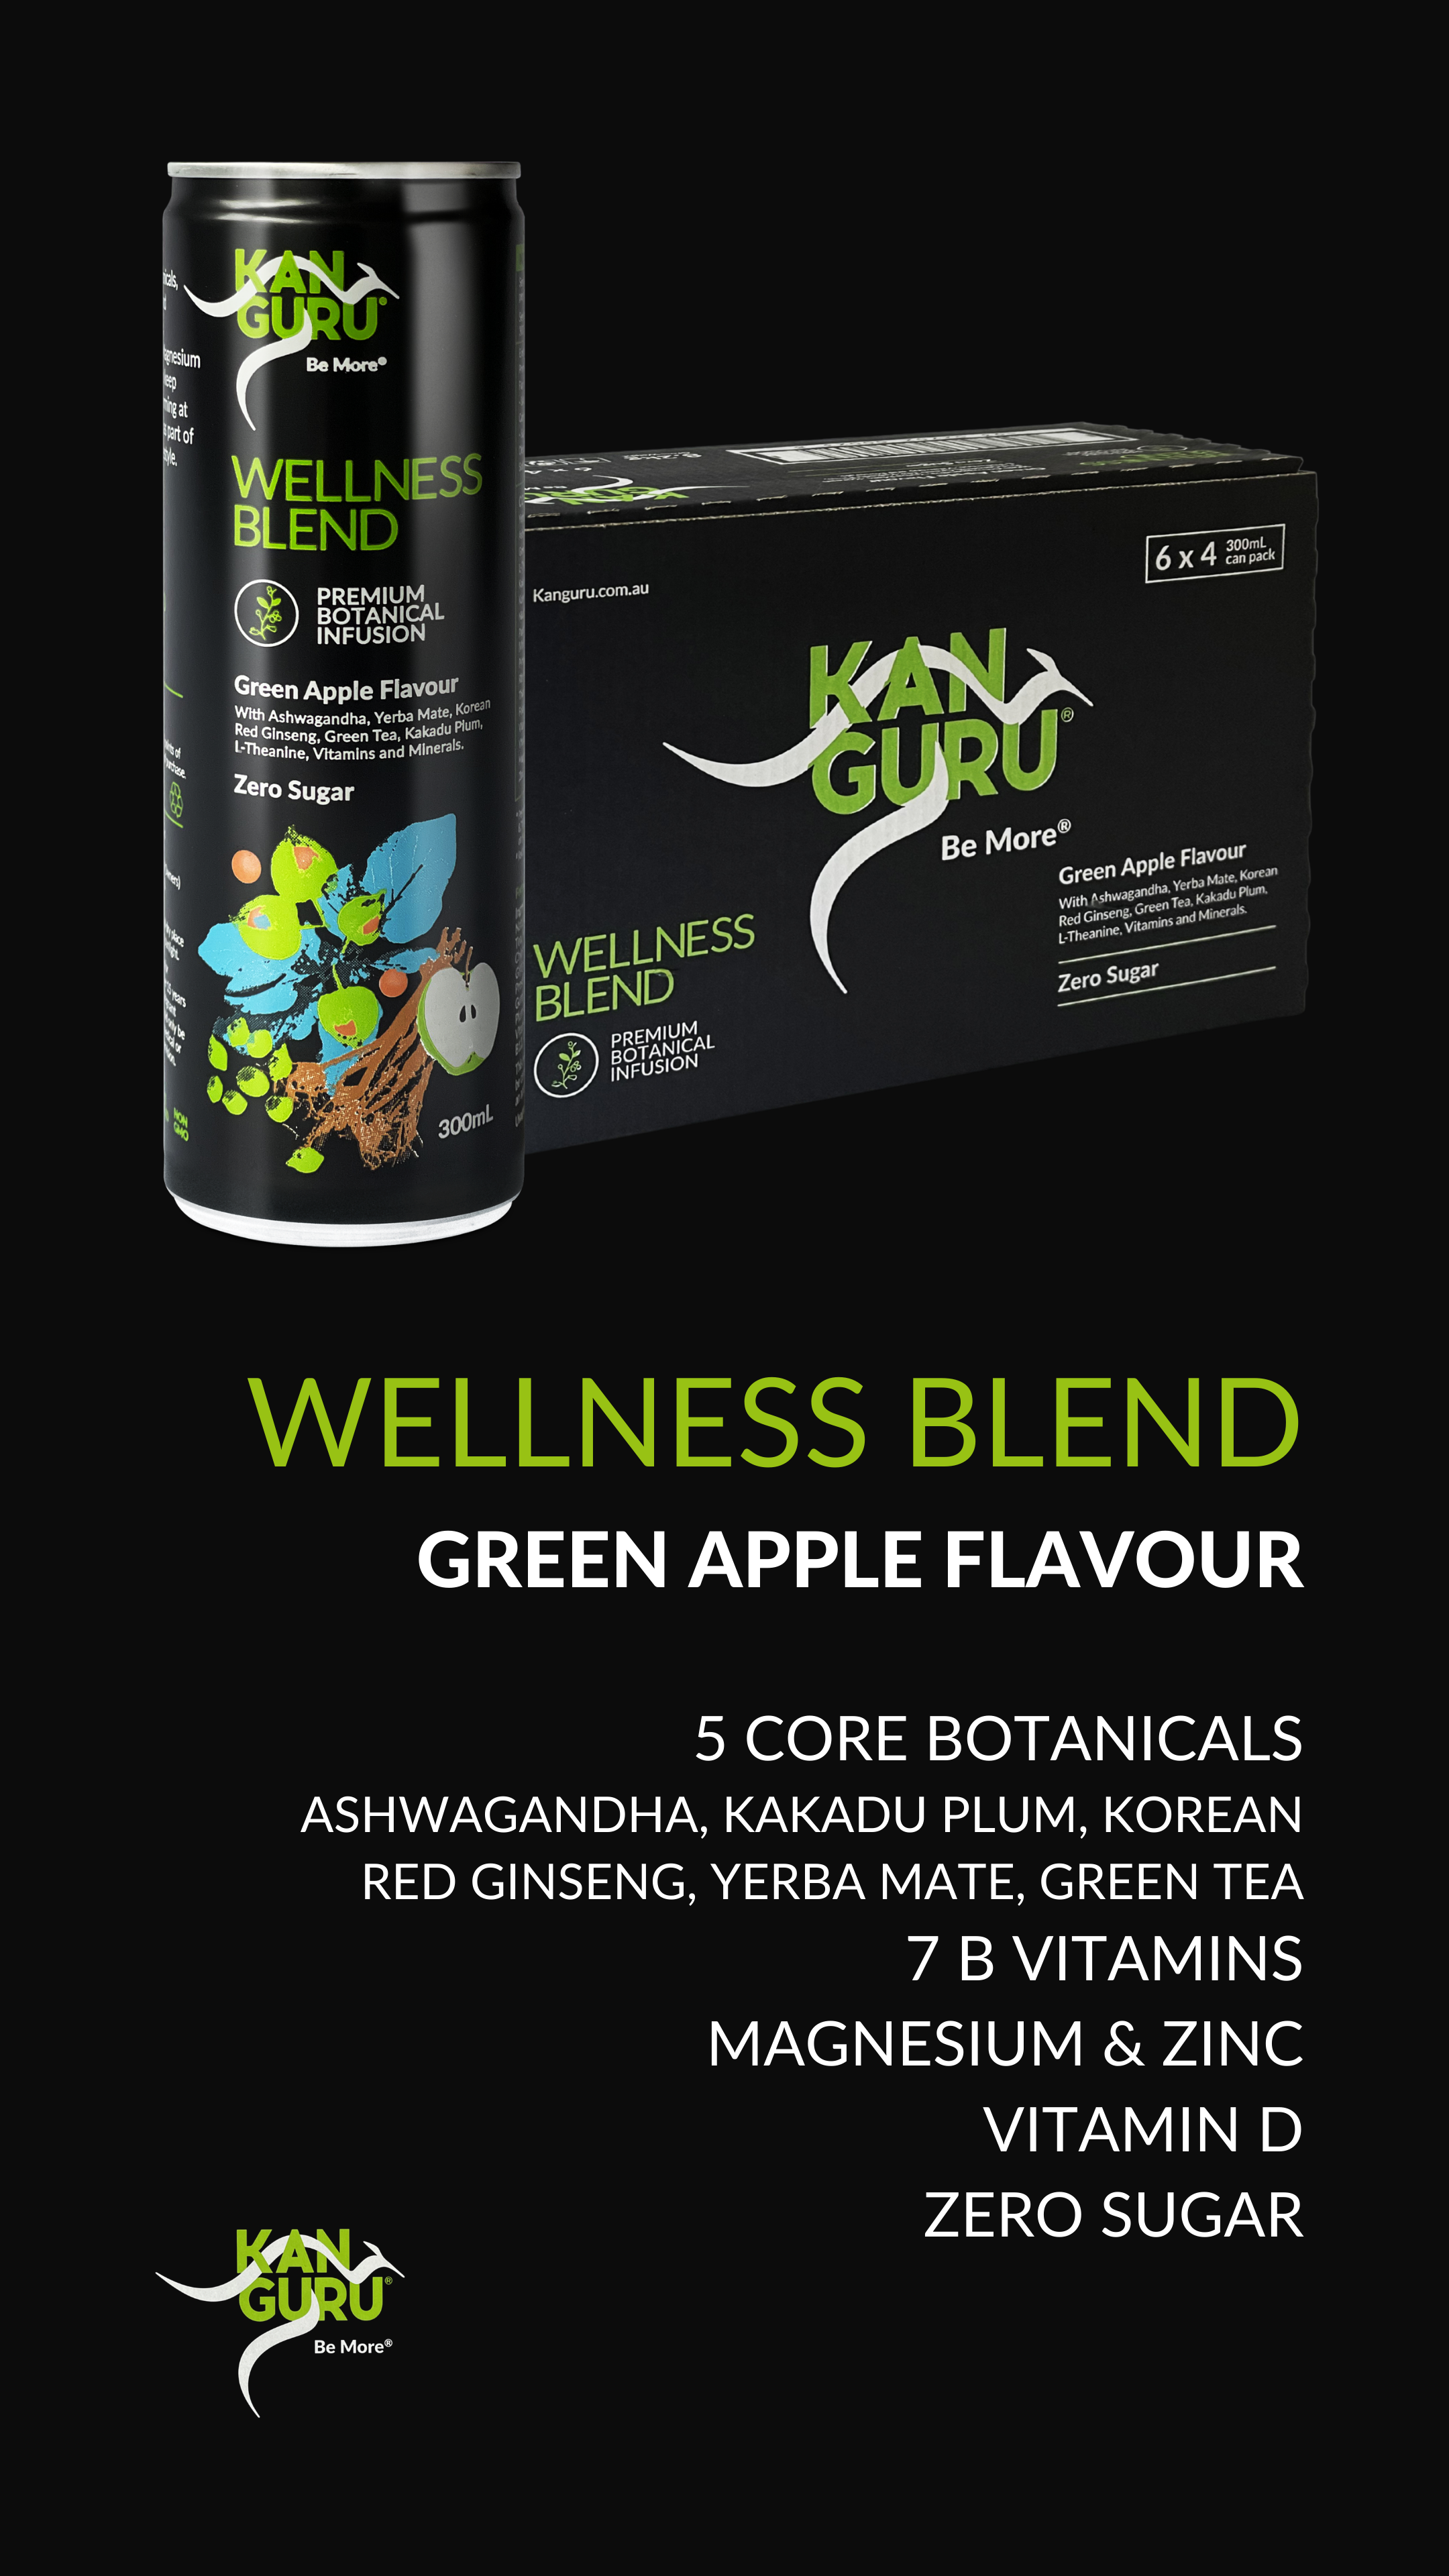 Kanguru's Wellness Blend in Green Apple flavour is an antioxidant-rich drink with the amazing benefits you have come to expect from Kanguru.